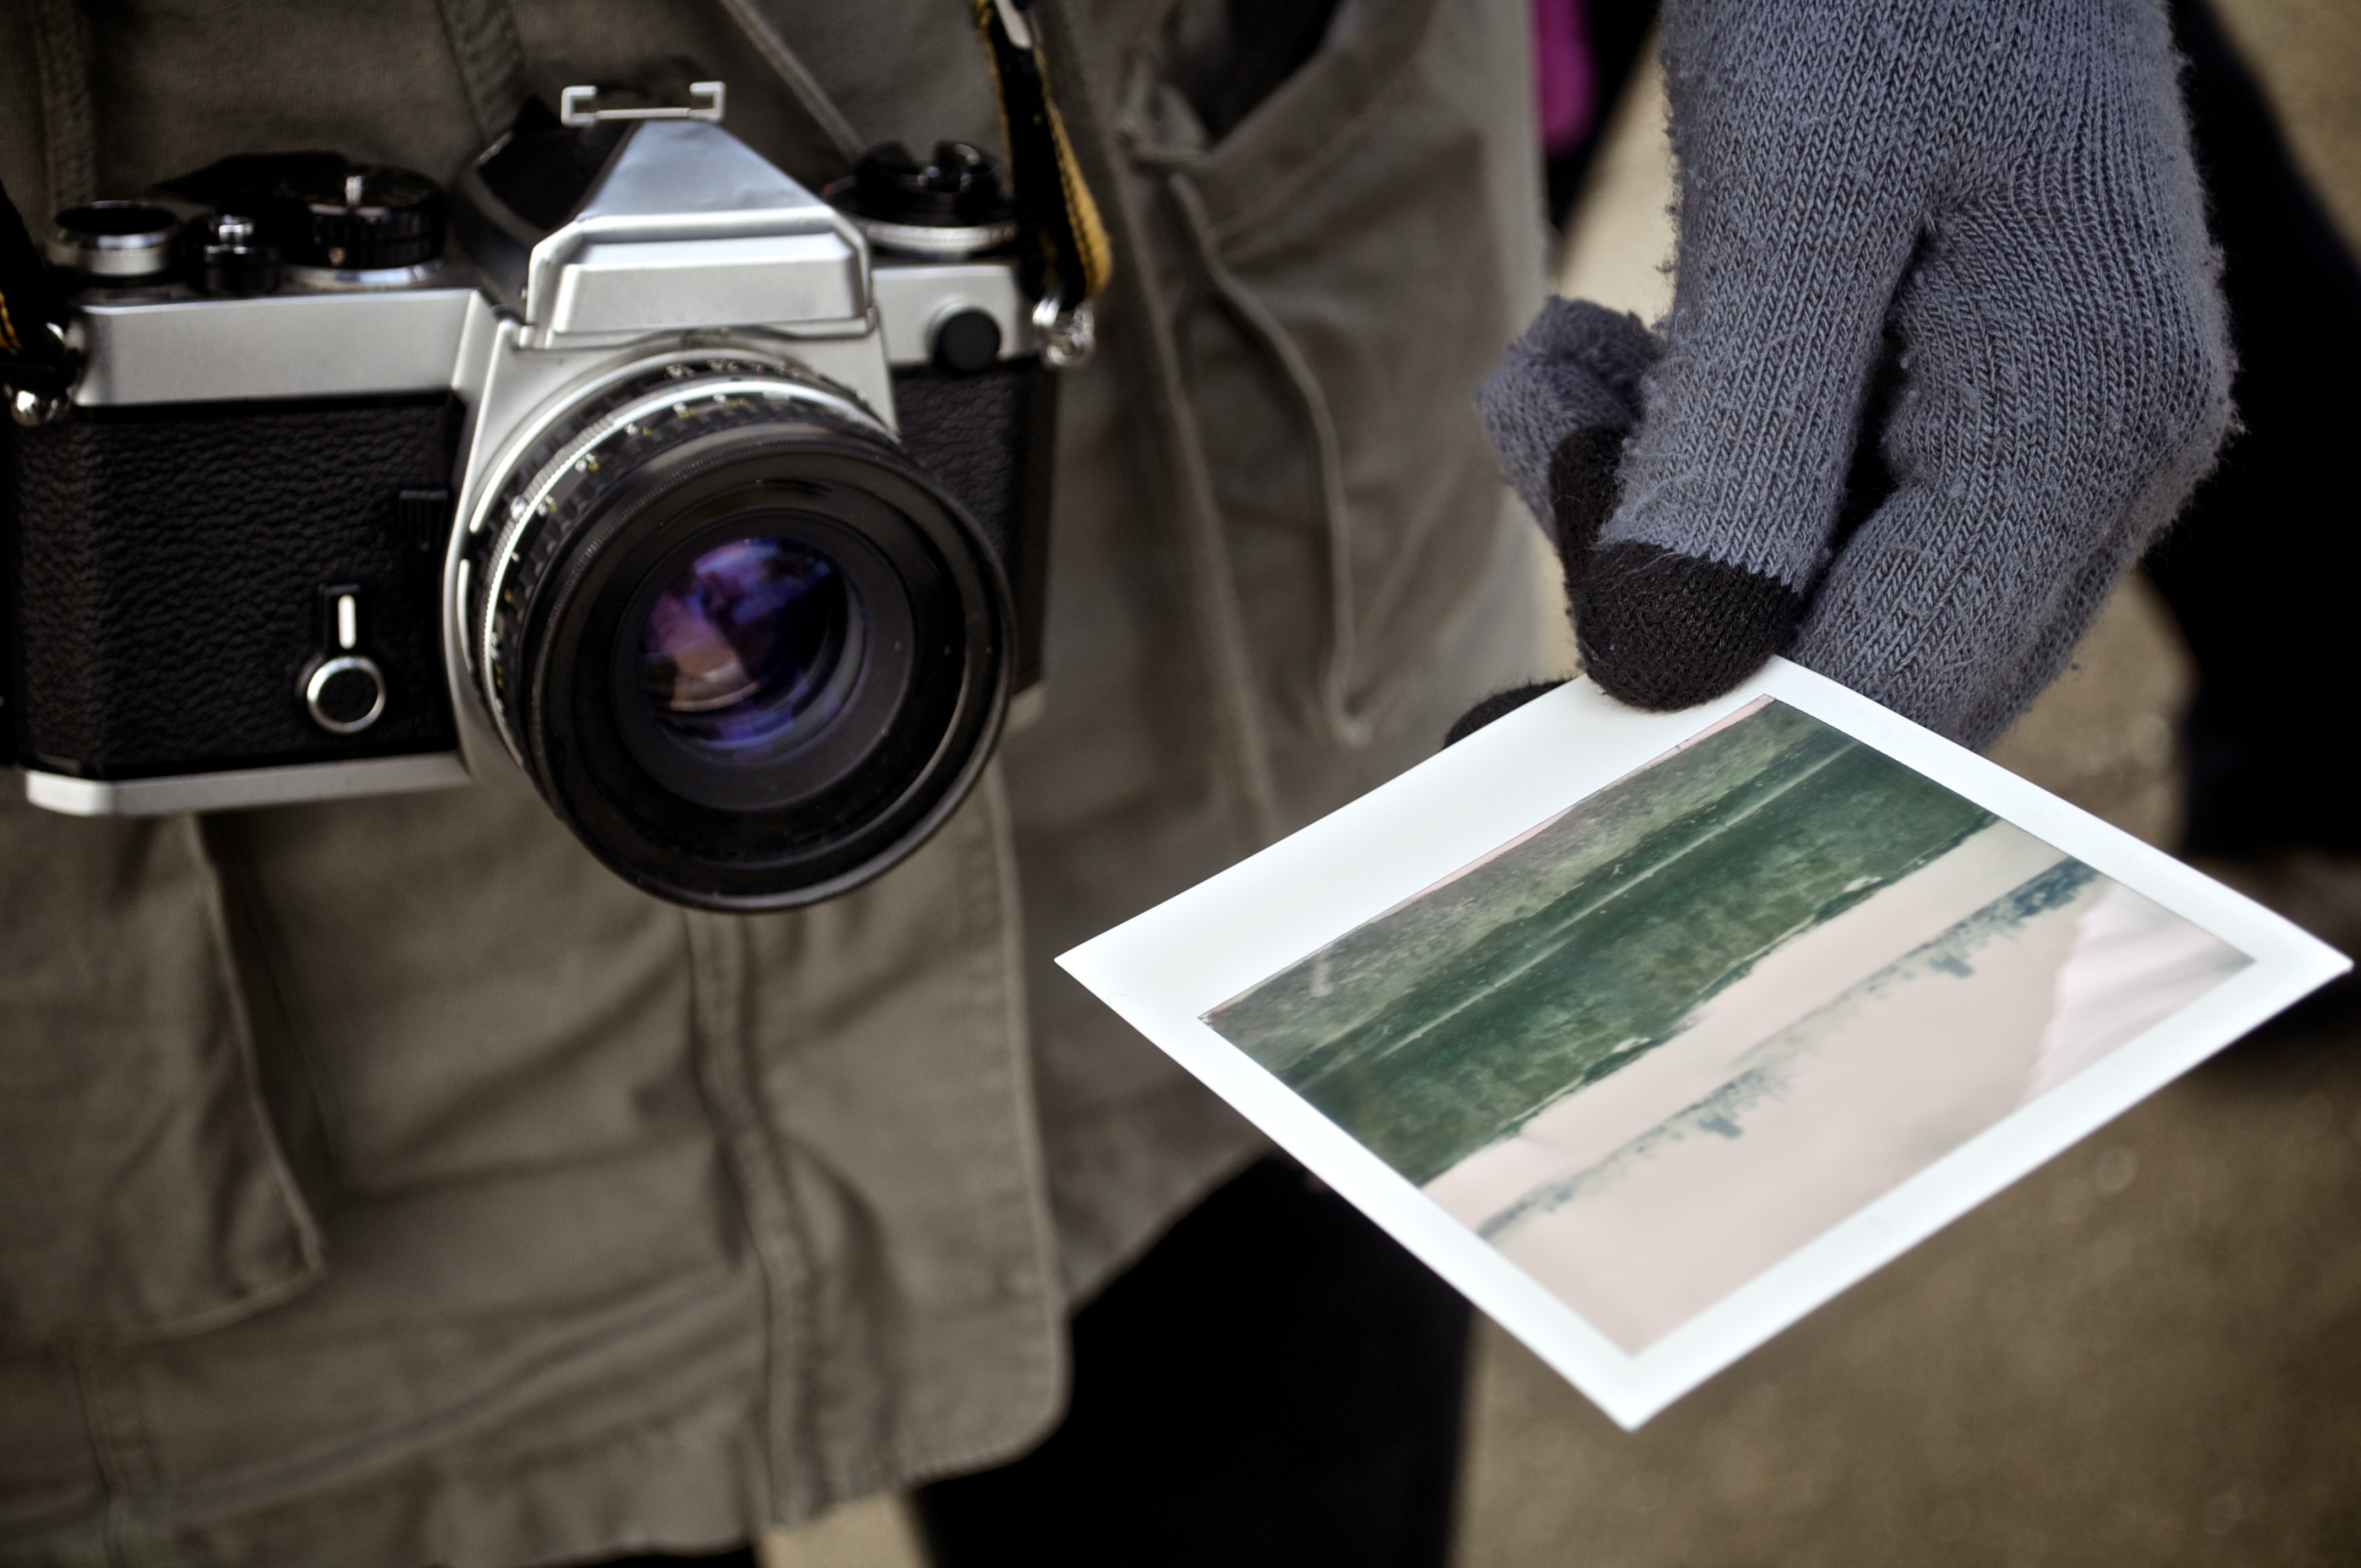 A close-up of a camera and a man wearing gloves holding a photograph.